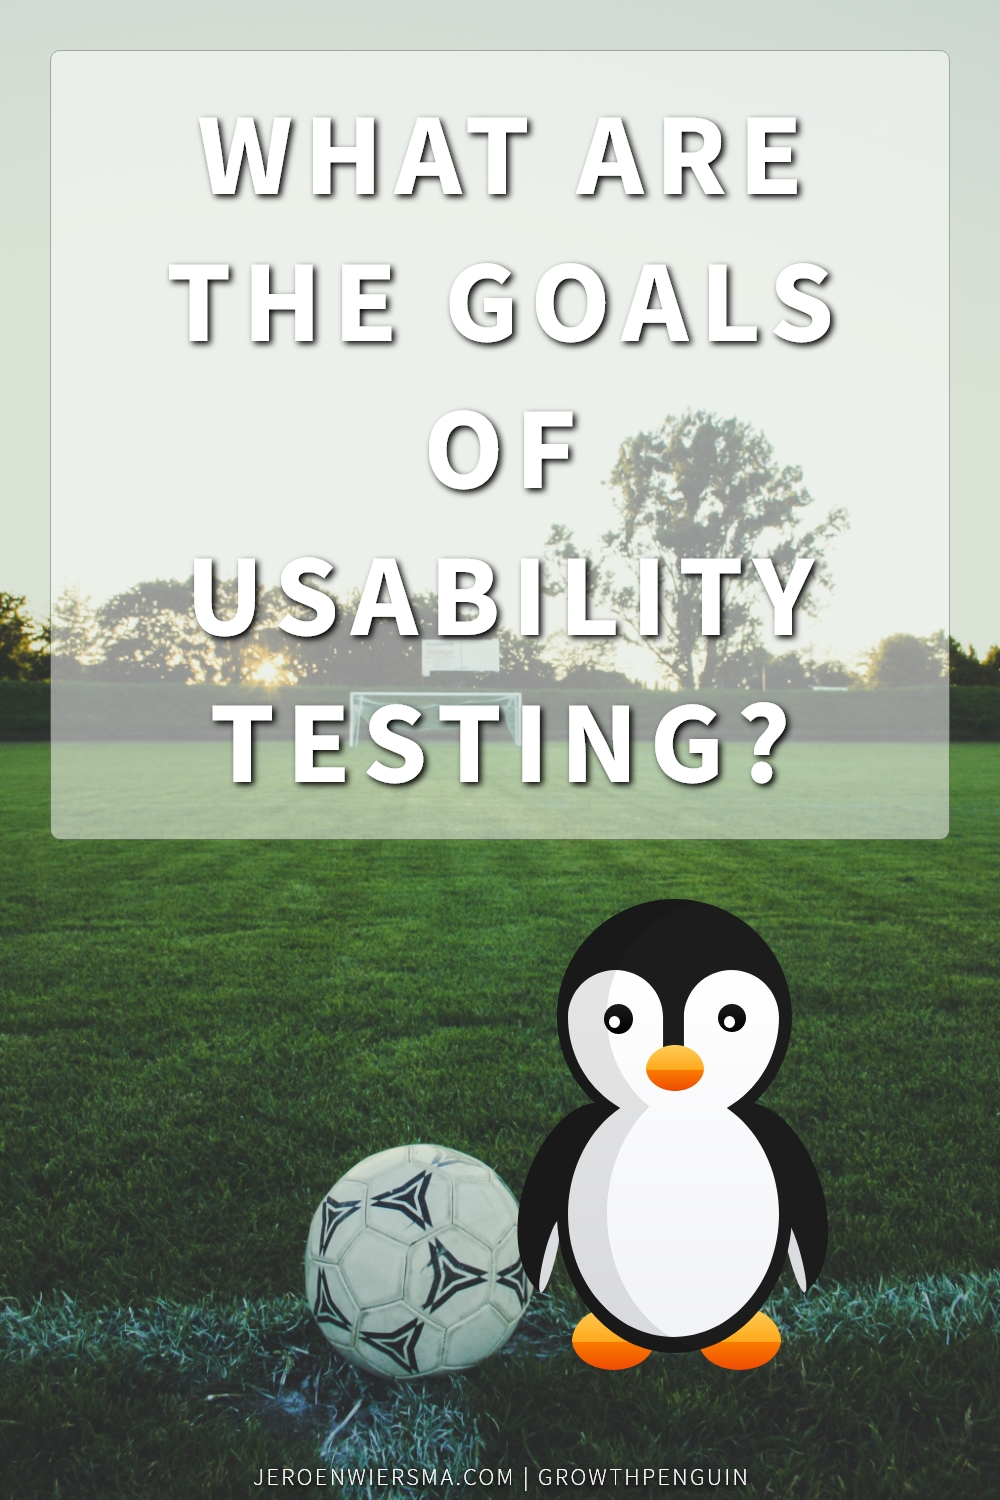 What are the goals of usability testing?